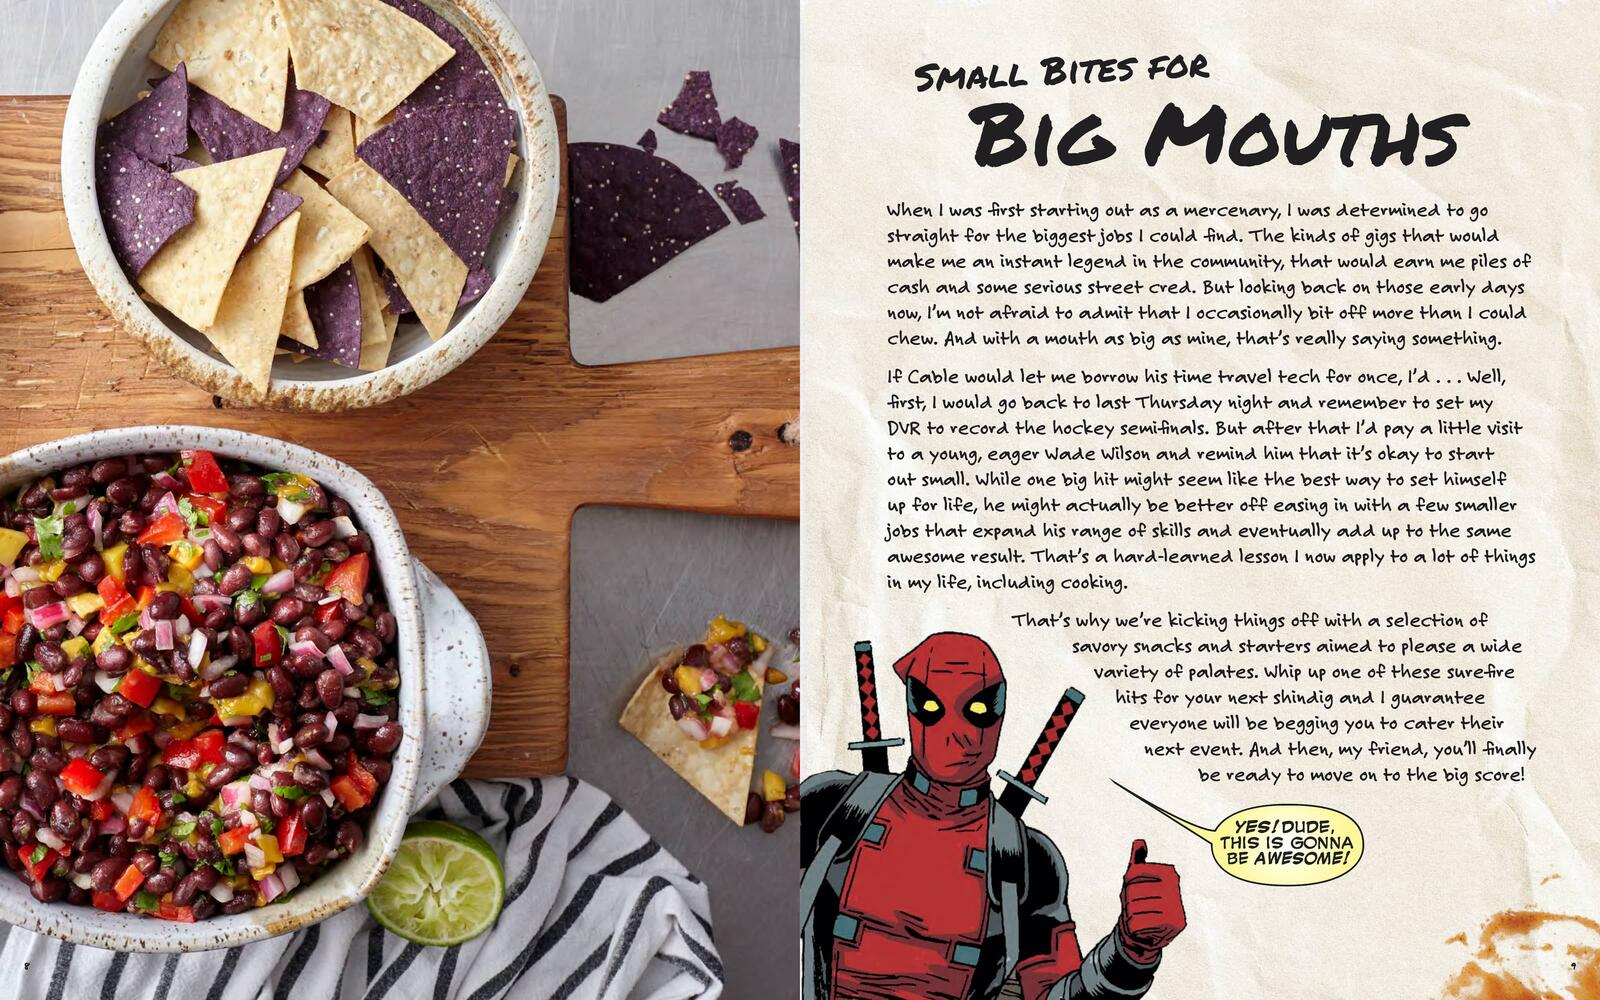 Cooking with Deadpool - Small Bites for Big Mouths